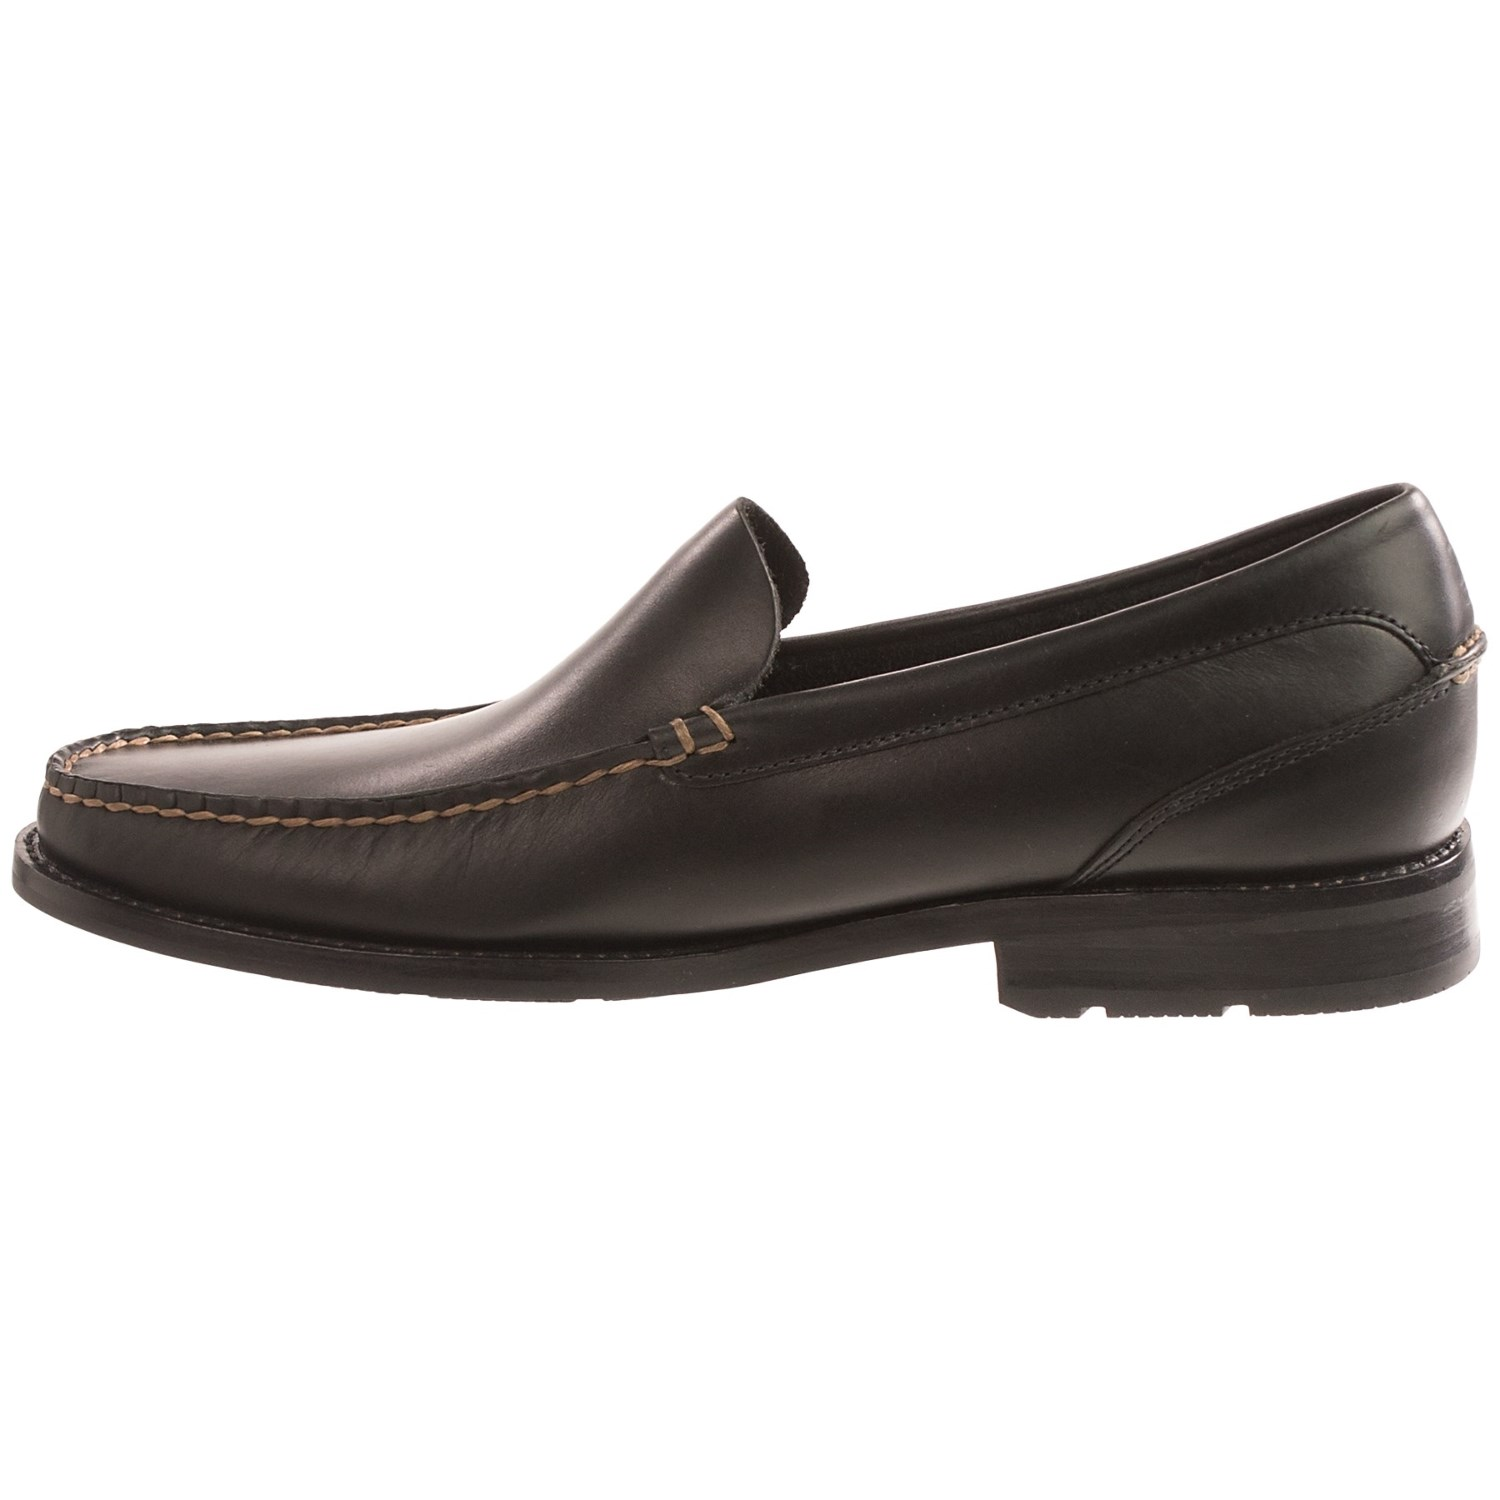 sperry single catholic girls The official school uniform for the girls is the gray jumper(one inch above the knee),a peter pan blouse, maroon stockings and either the tan bucks or a tan or brown sperry.